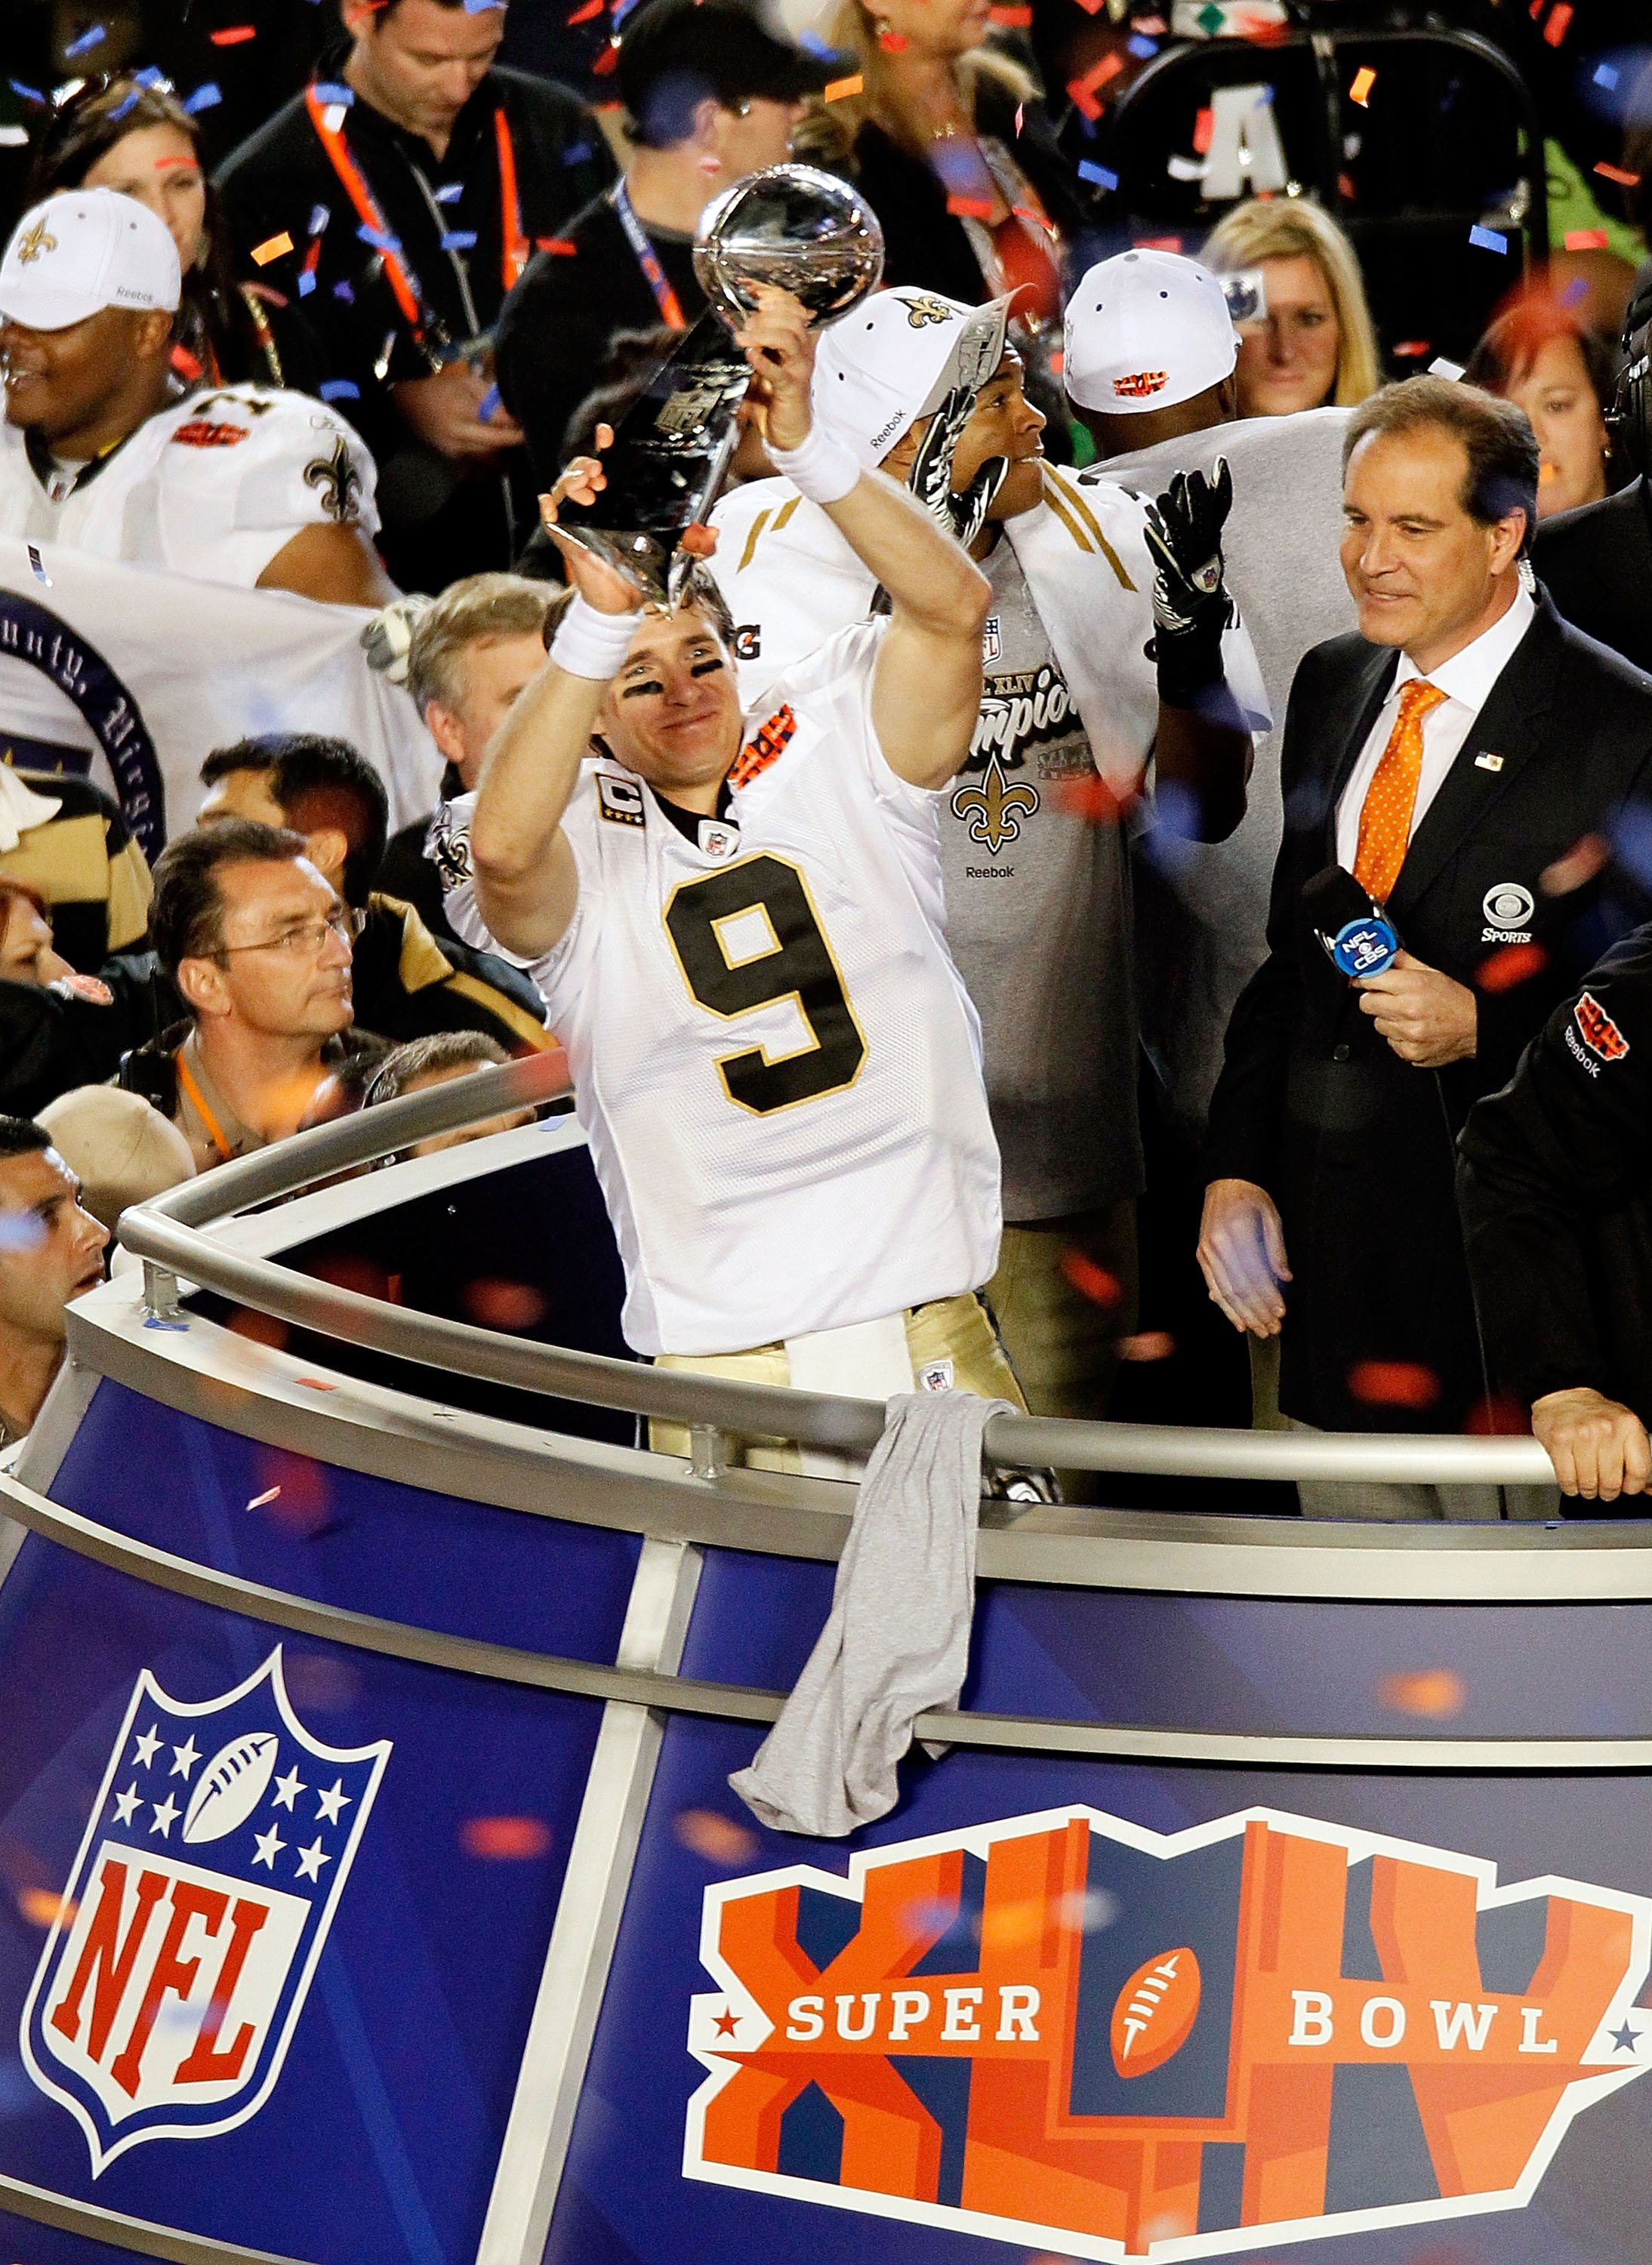 MIAMI GARDENS, FL - FEBRUARY 07:  Quarterback Drew Brees #9 of the New Orleans Saints celebrates after his team defeated the Indianapolis Colts during Super Bowl XLIV on February 7, 2010 at Sun Life Stadium in Miami Gardens, Florida.  (Photo by Doug Benc/